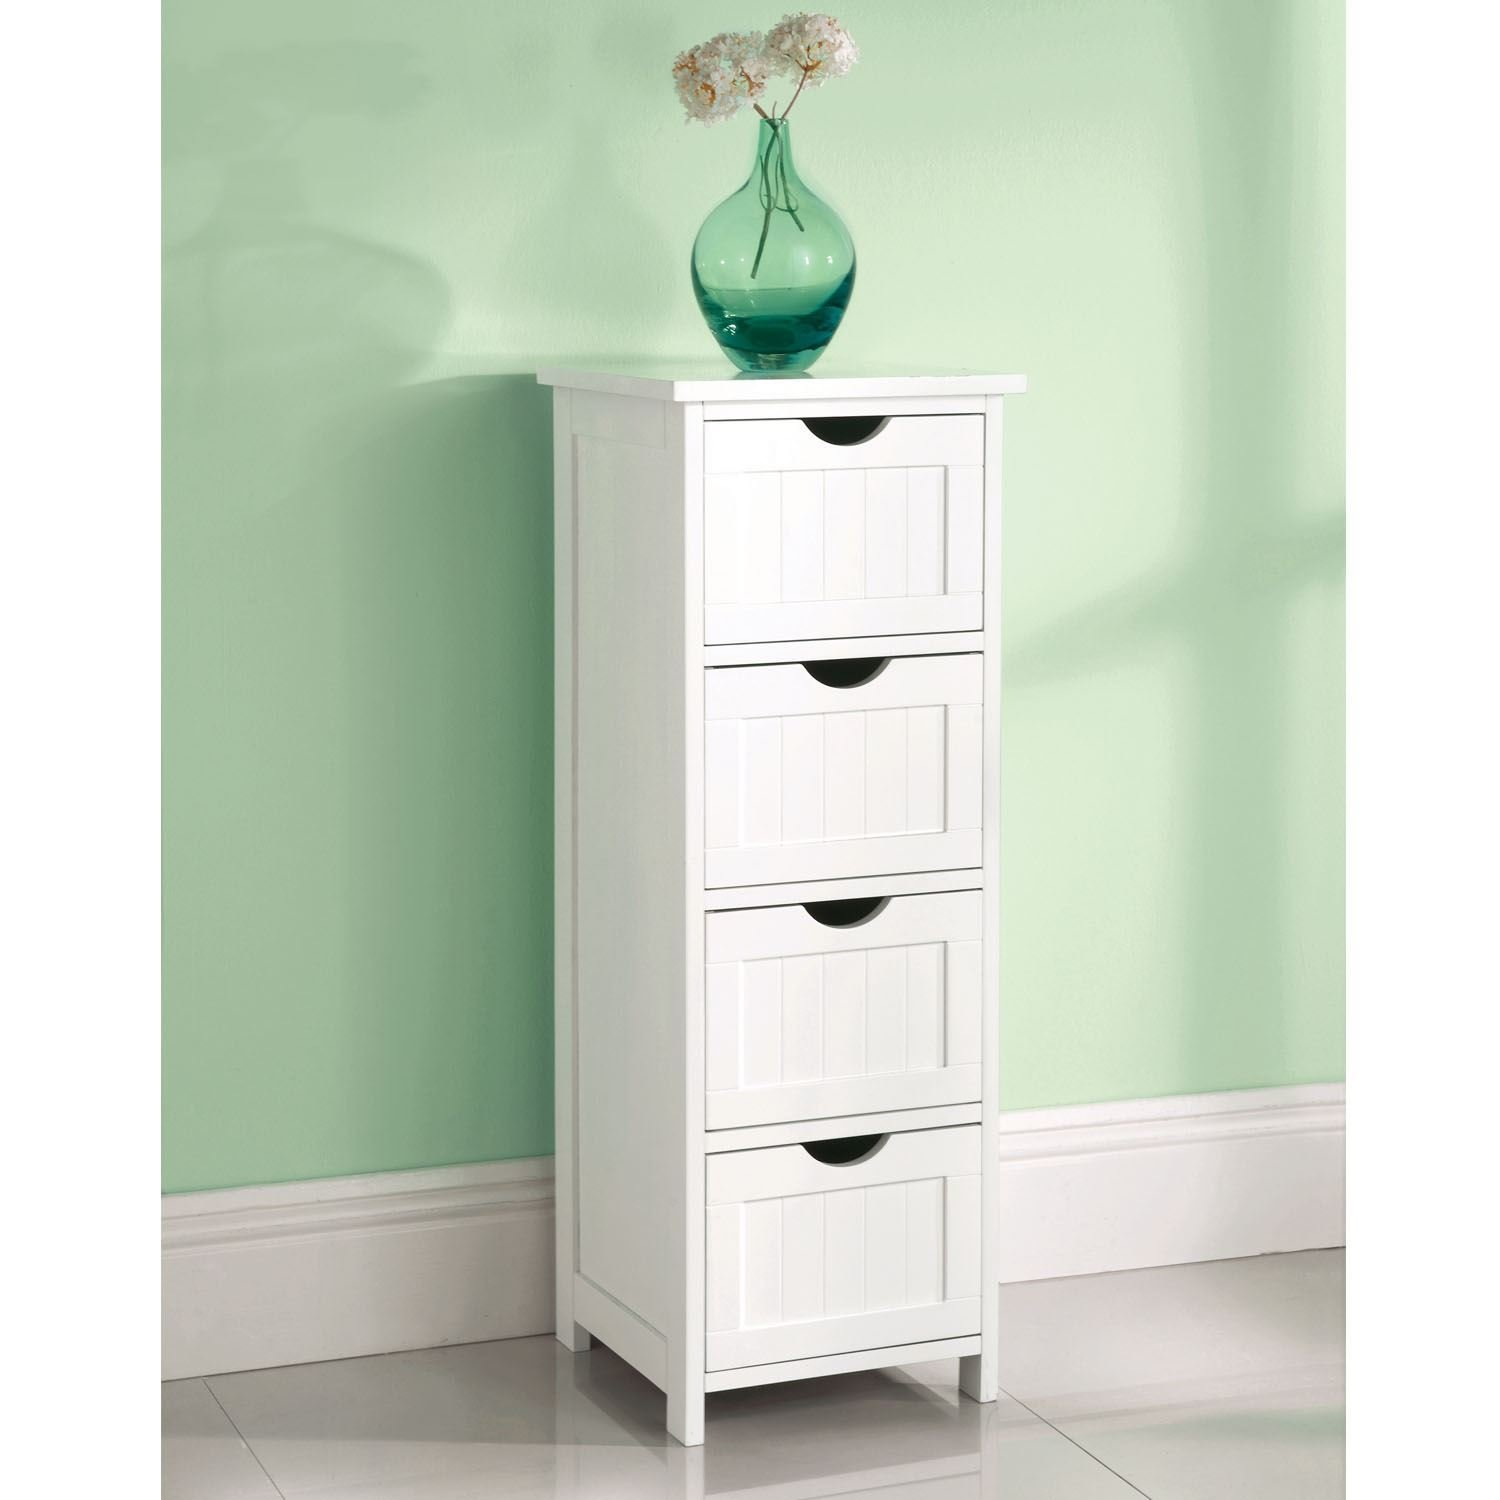 Best White Wooden 1 Drawer Bathroom Bedroom Cabinet Shelving Unit Storage Cupboard Ebay With Pictures